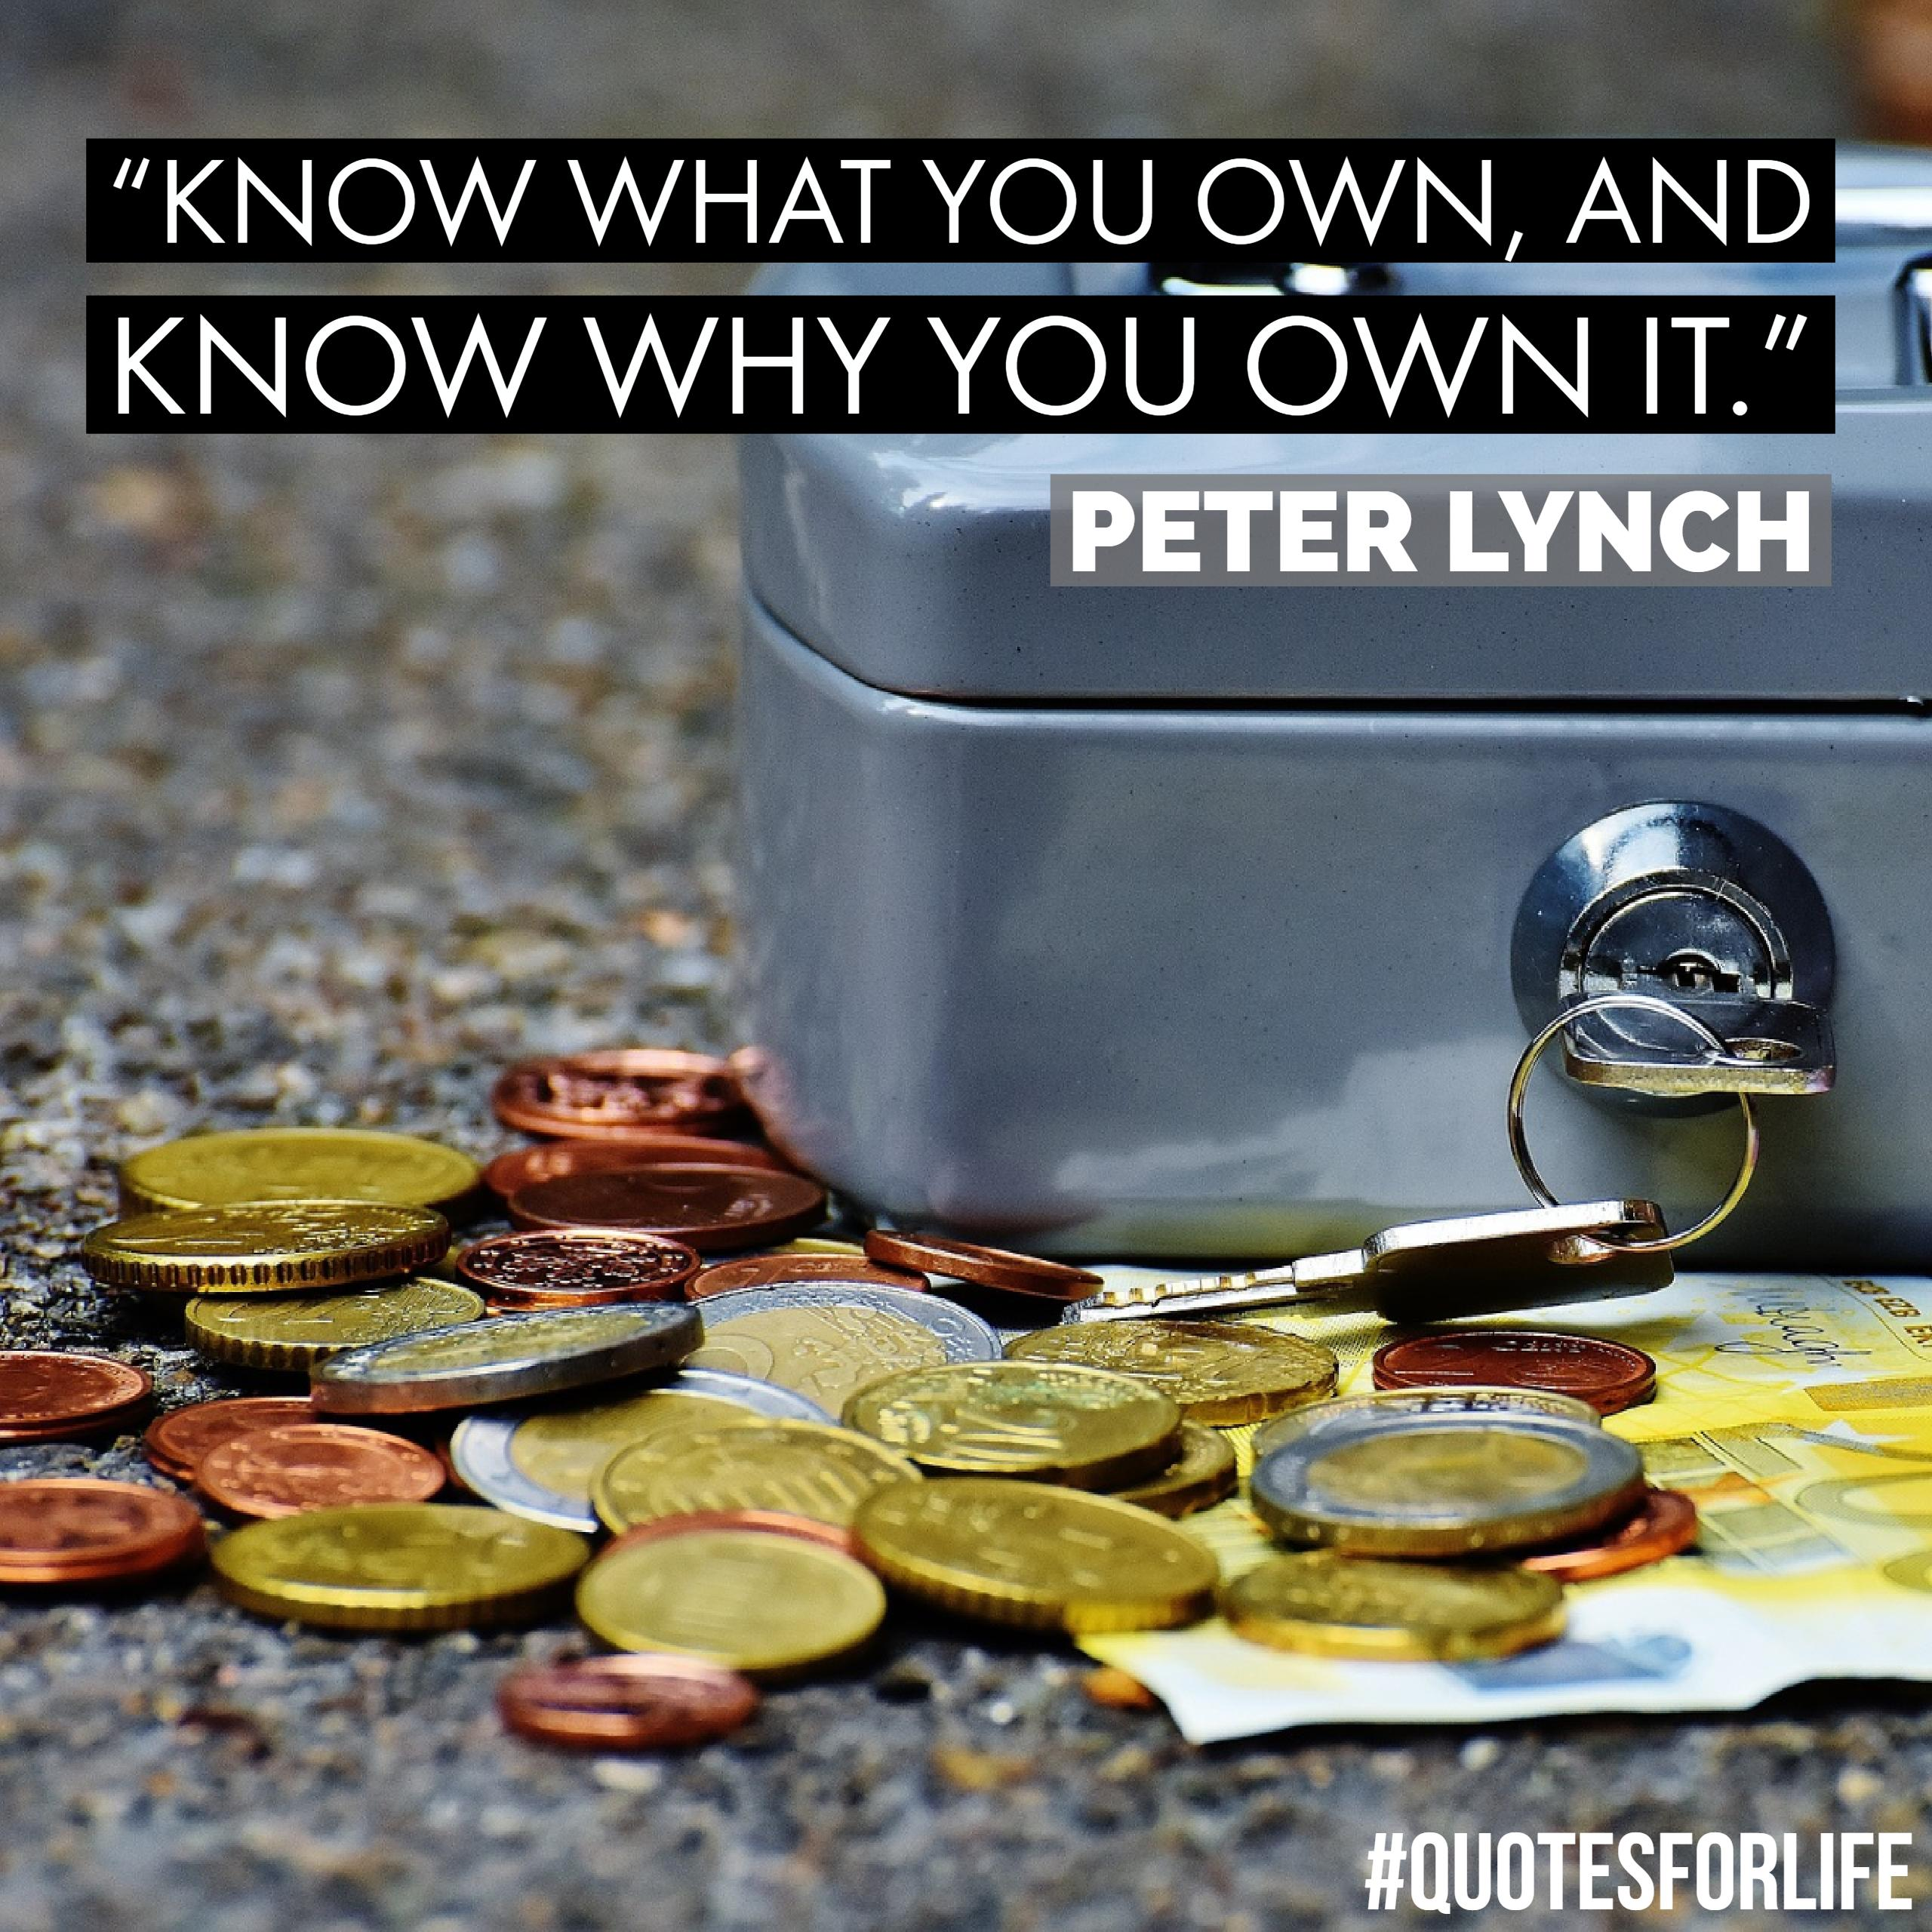 U201cKnow What You Own, And Know Why You Own It.u201d U2013 Peter Lynch